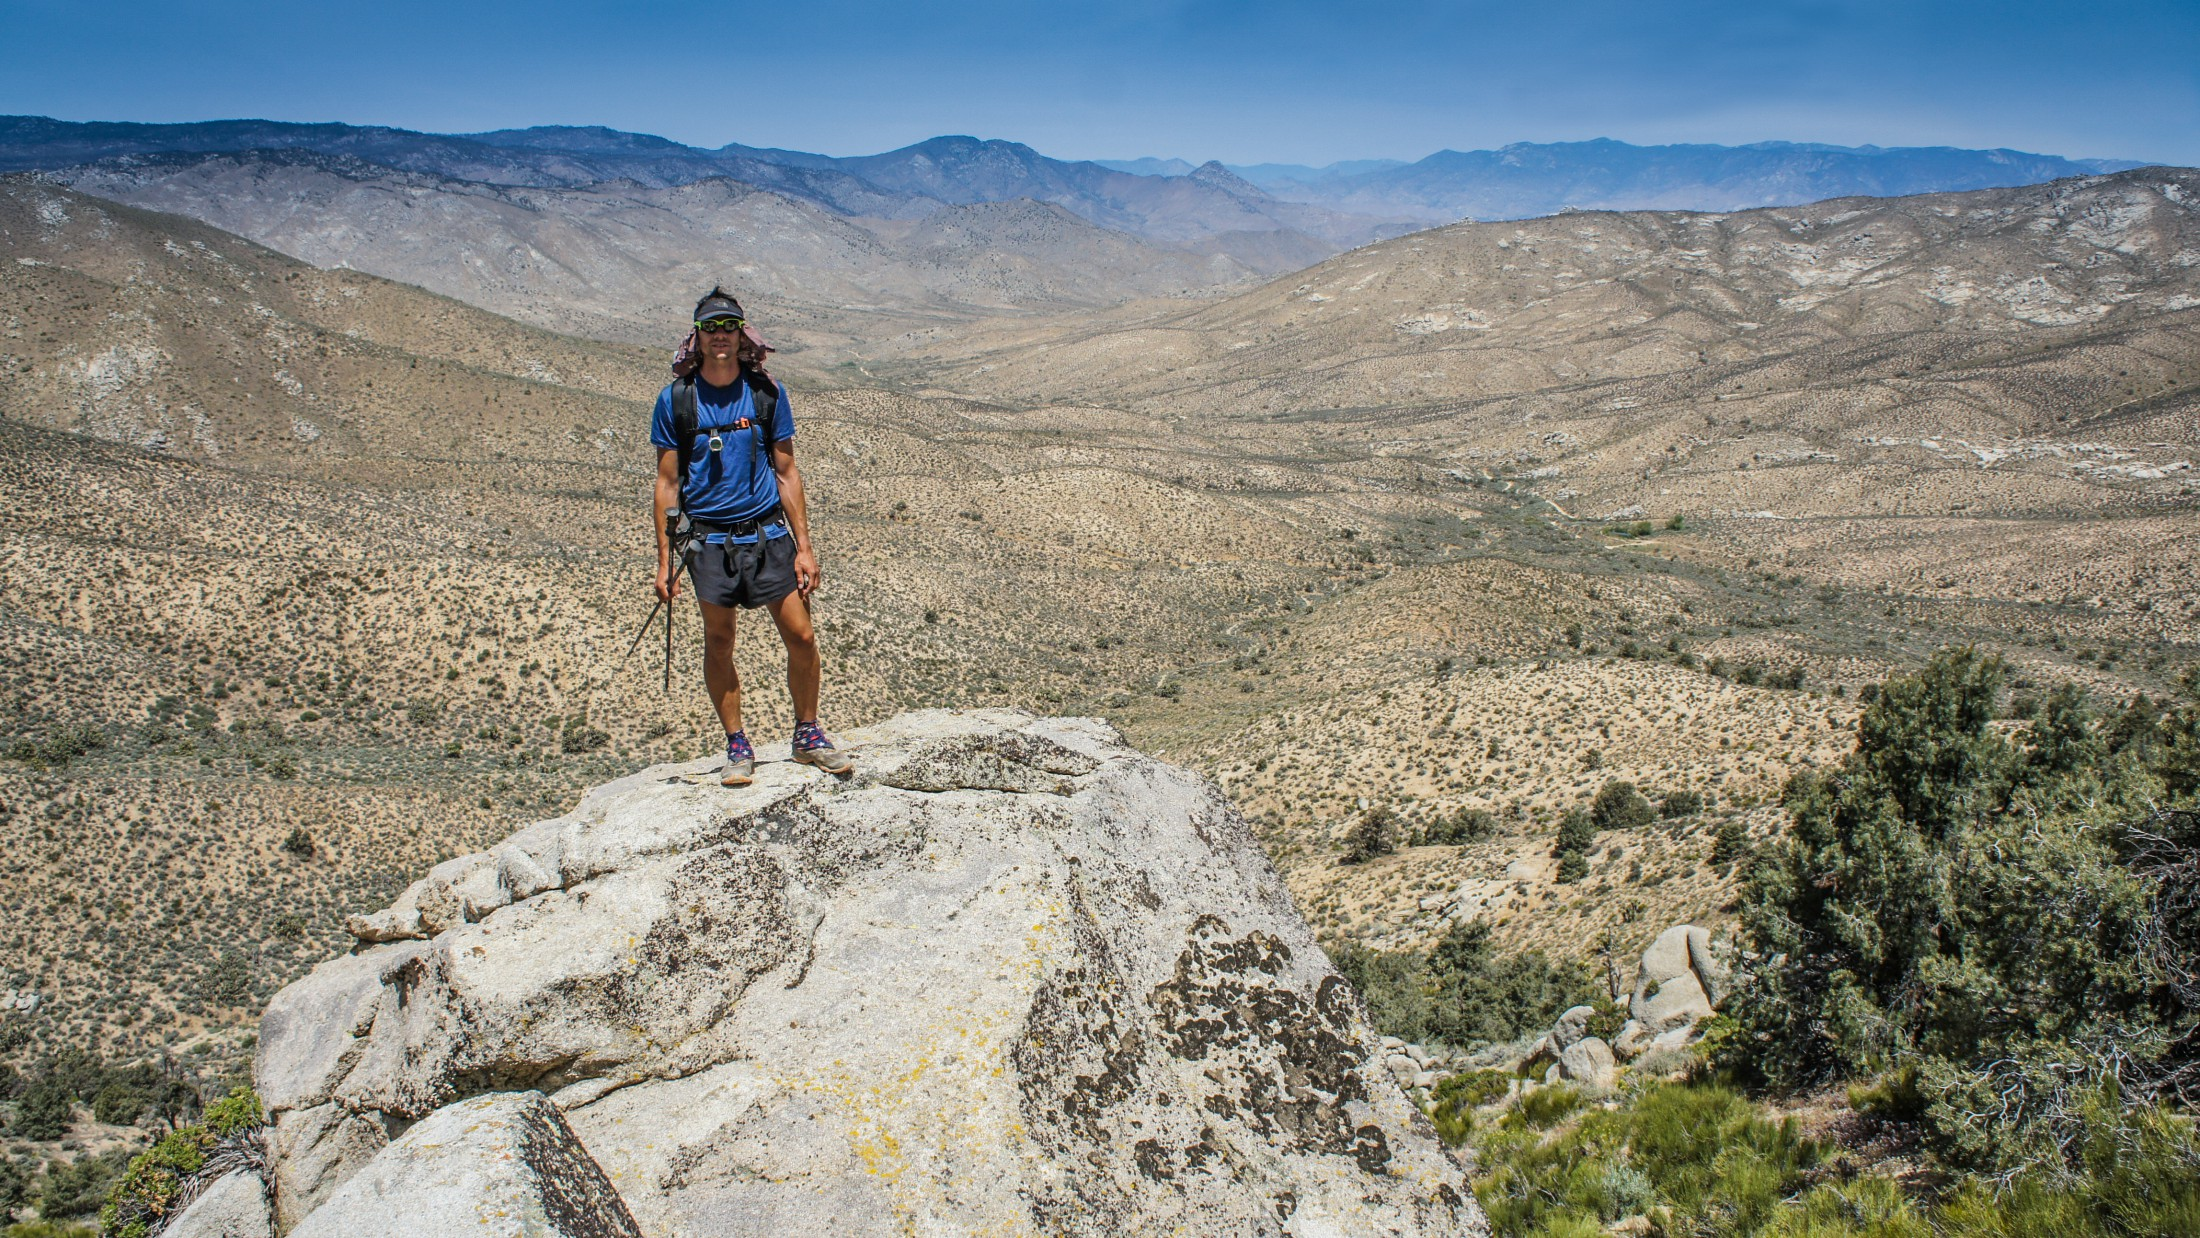 Pacific Crest Trail, 21.11.2018, 19:30 Uhr